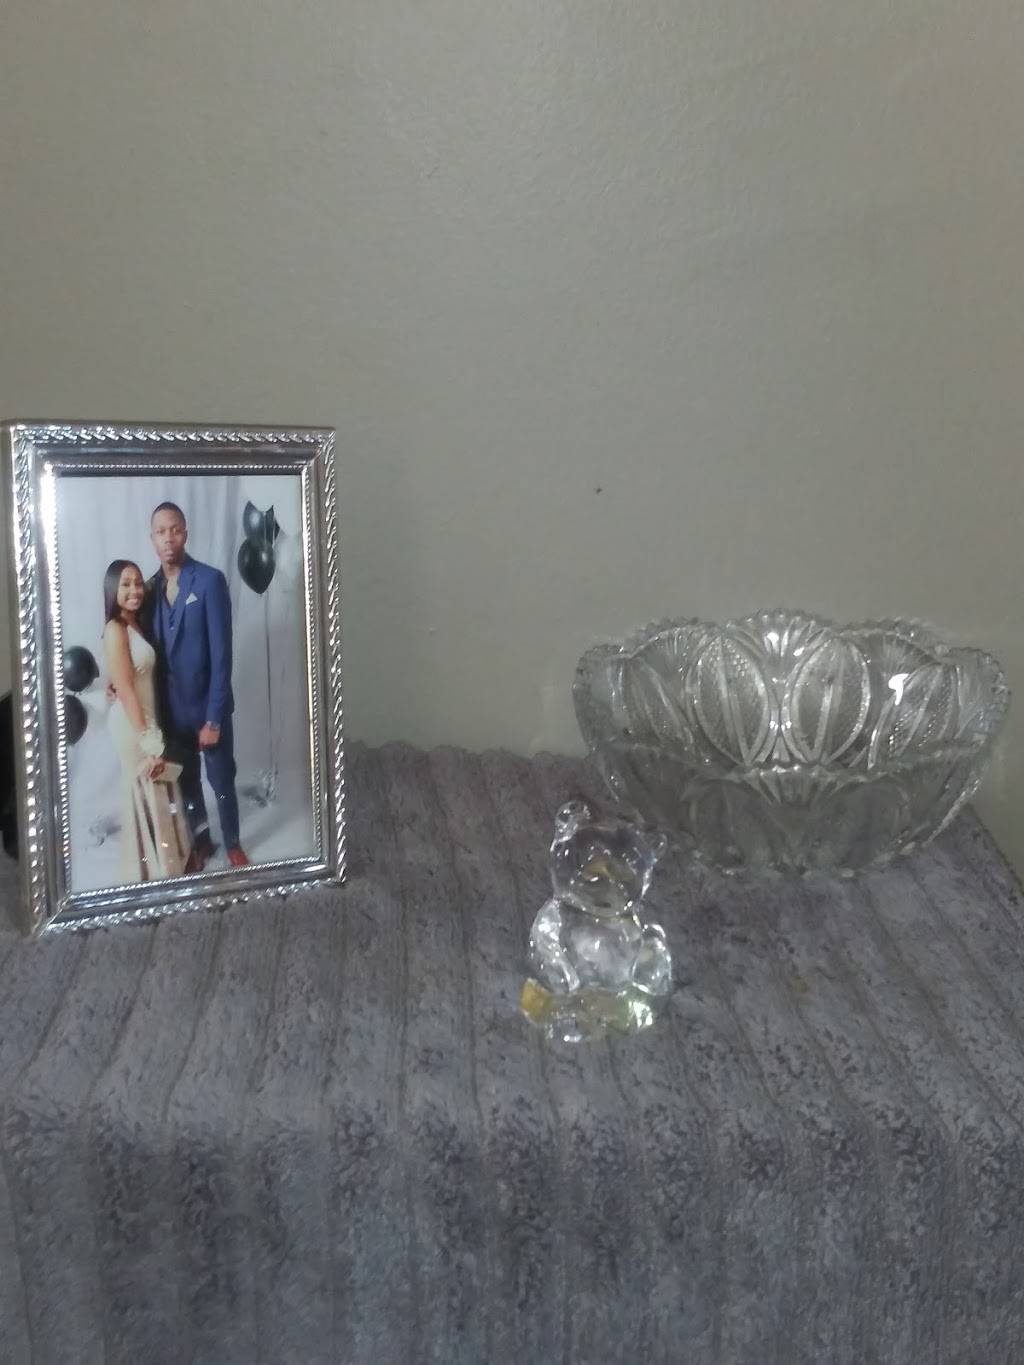 Angies Home Furnishing and More - home goods store    Photo 8 of 9   Address: 15417 Corkhill Rd, Cleveland, OH 44137, USA   Phone: (216) 450-0322